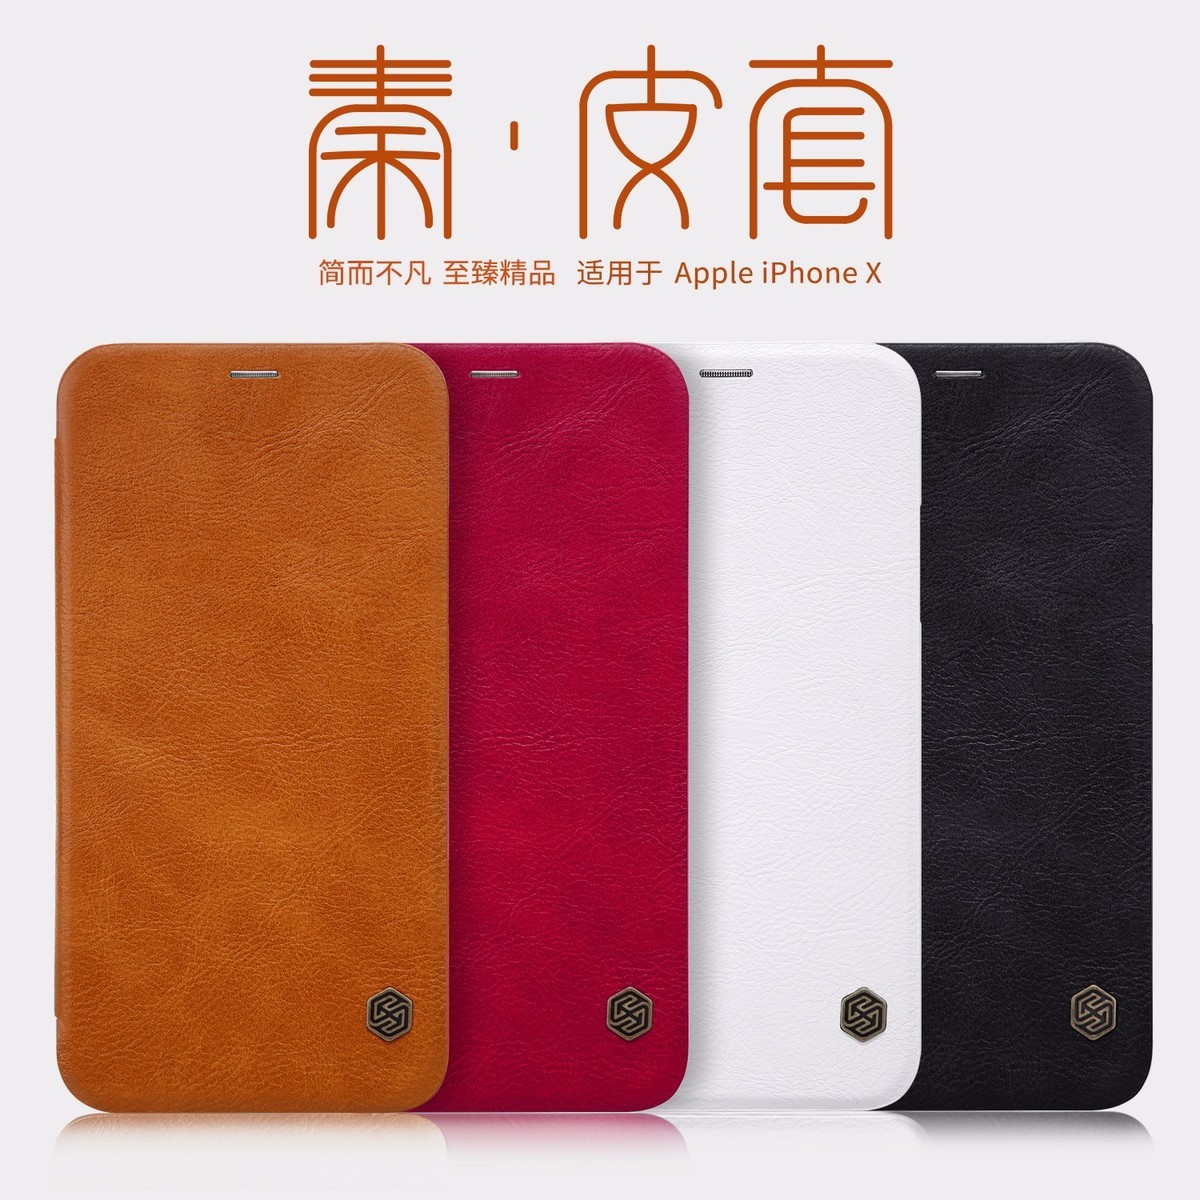 sFor iPhone X Case Nillkin Qin Series Cover PU Leather Flip Case for iPhone X 5.8 inch